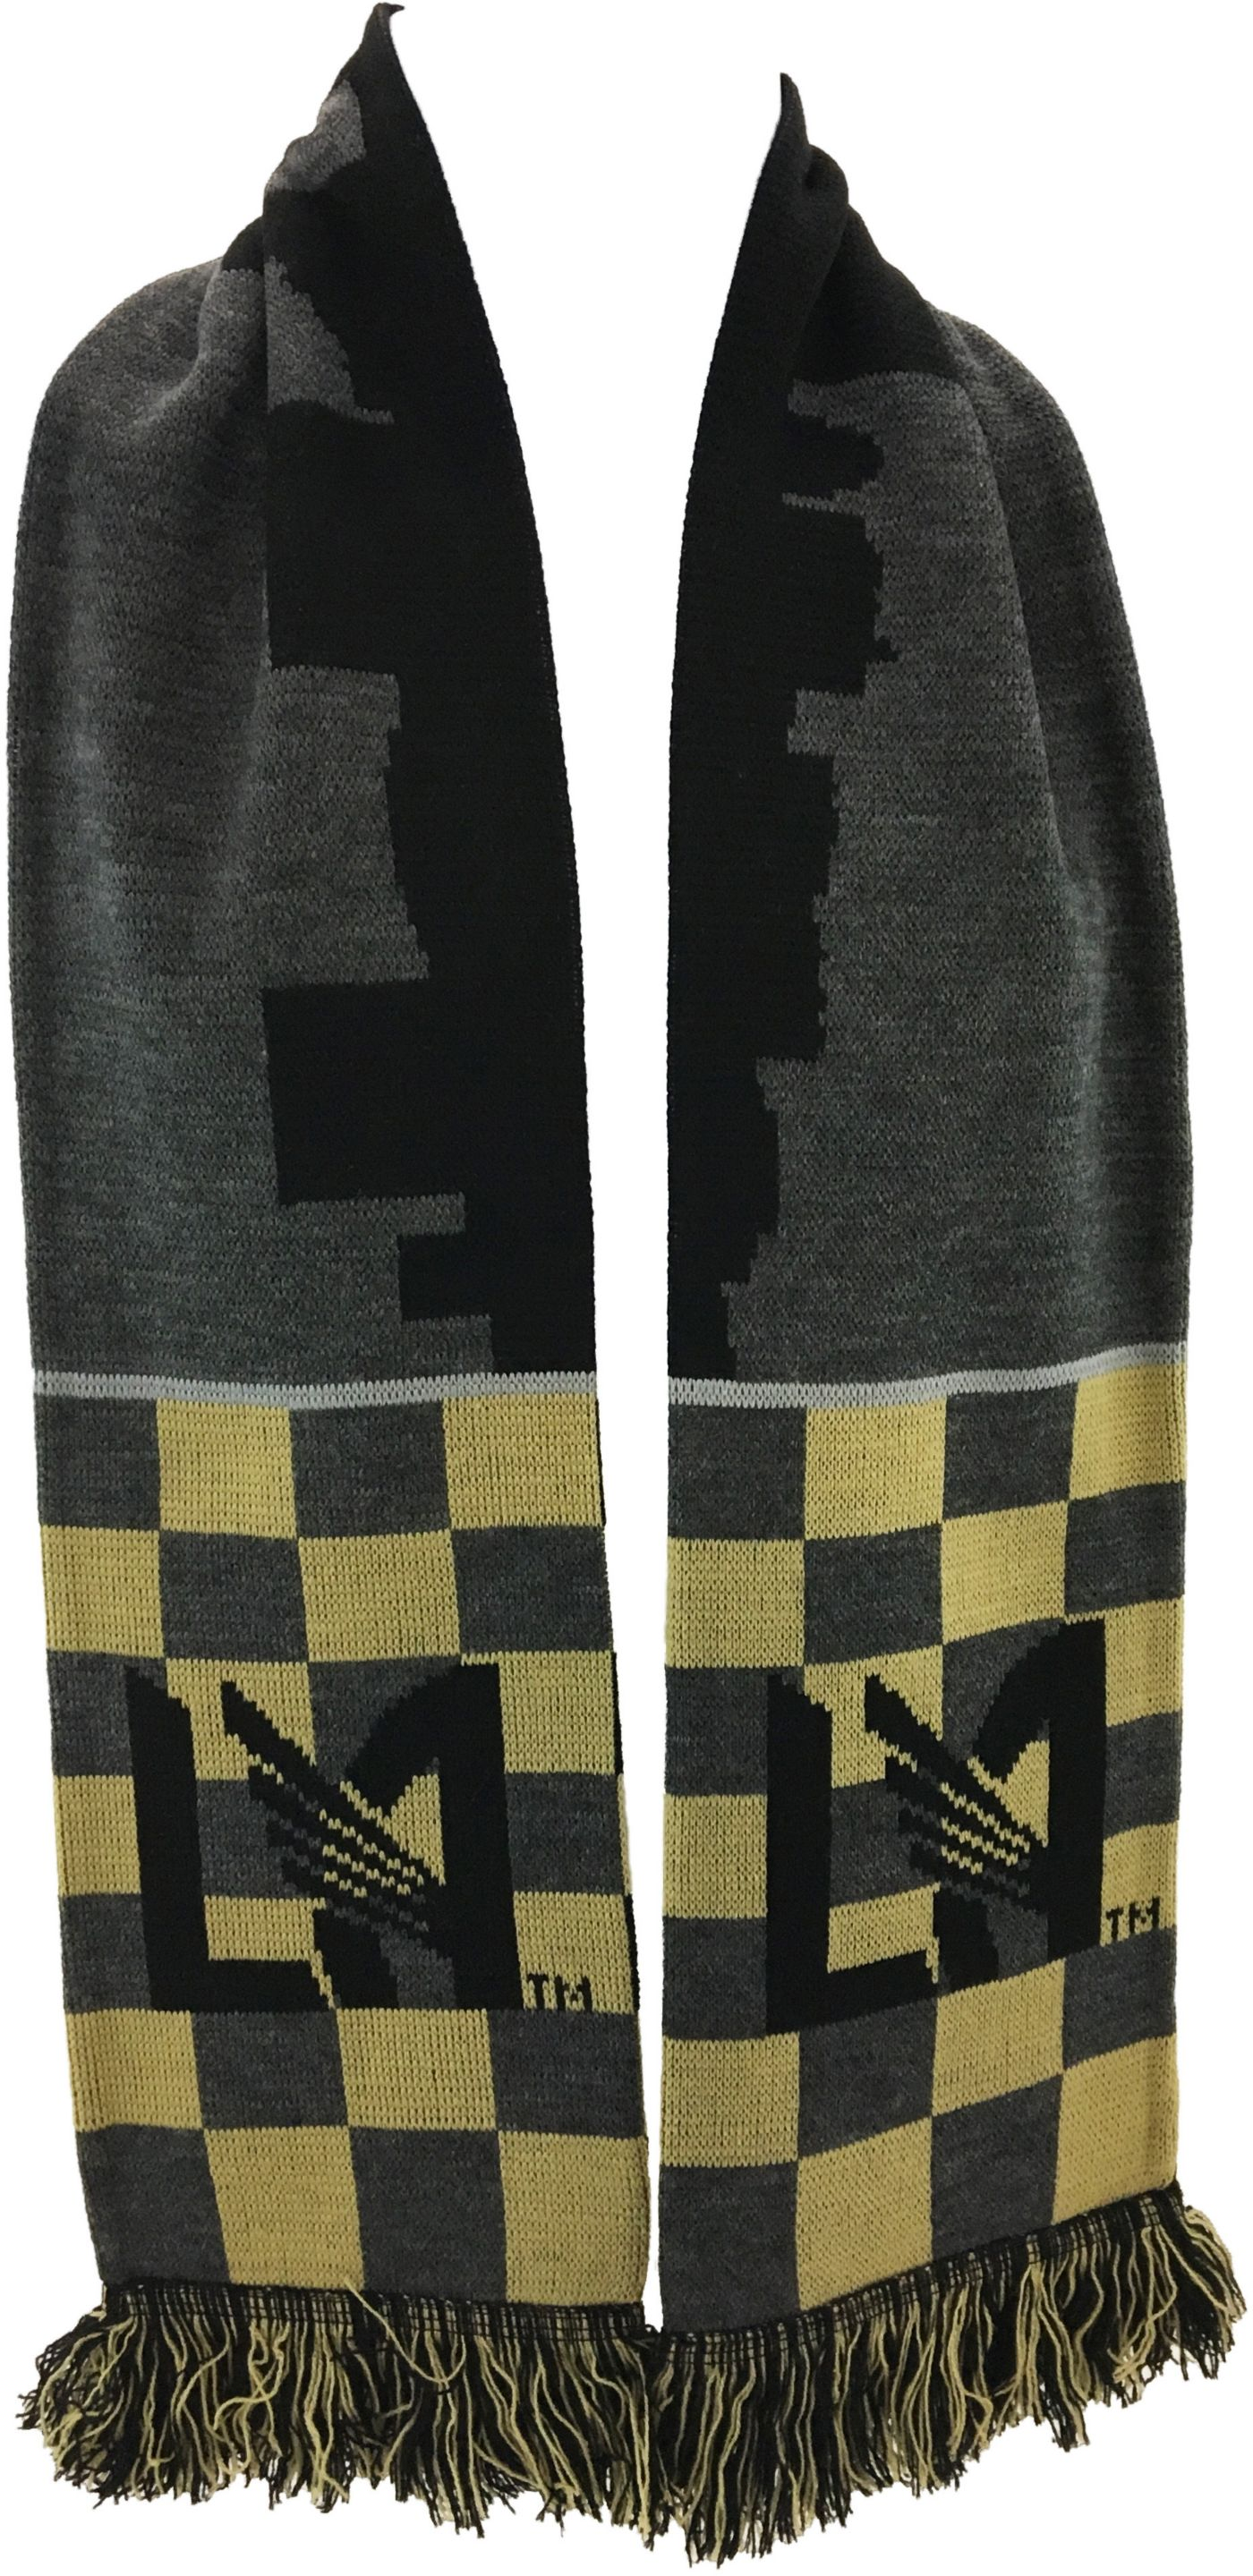 Ruffneck Scarves Los Angeles FC Checkered Scarf